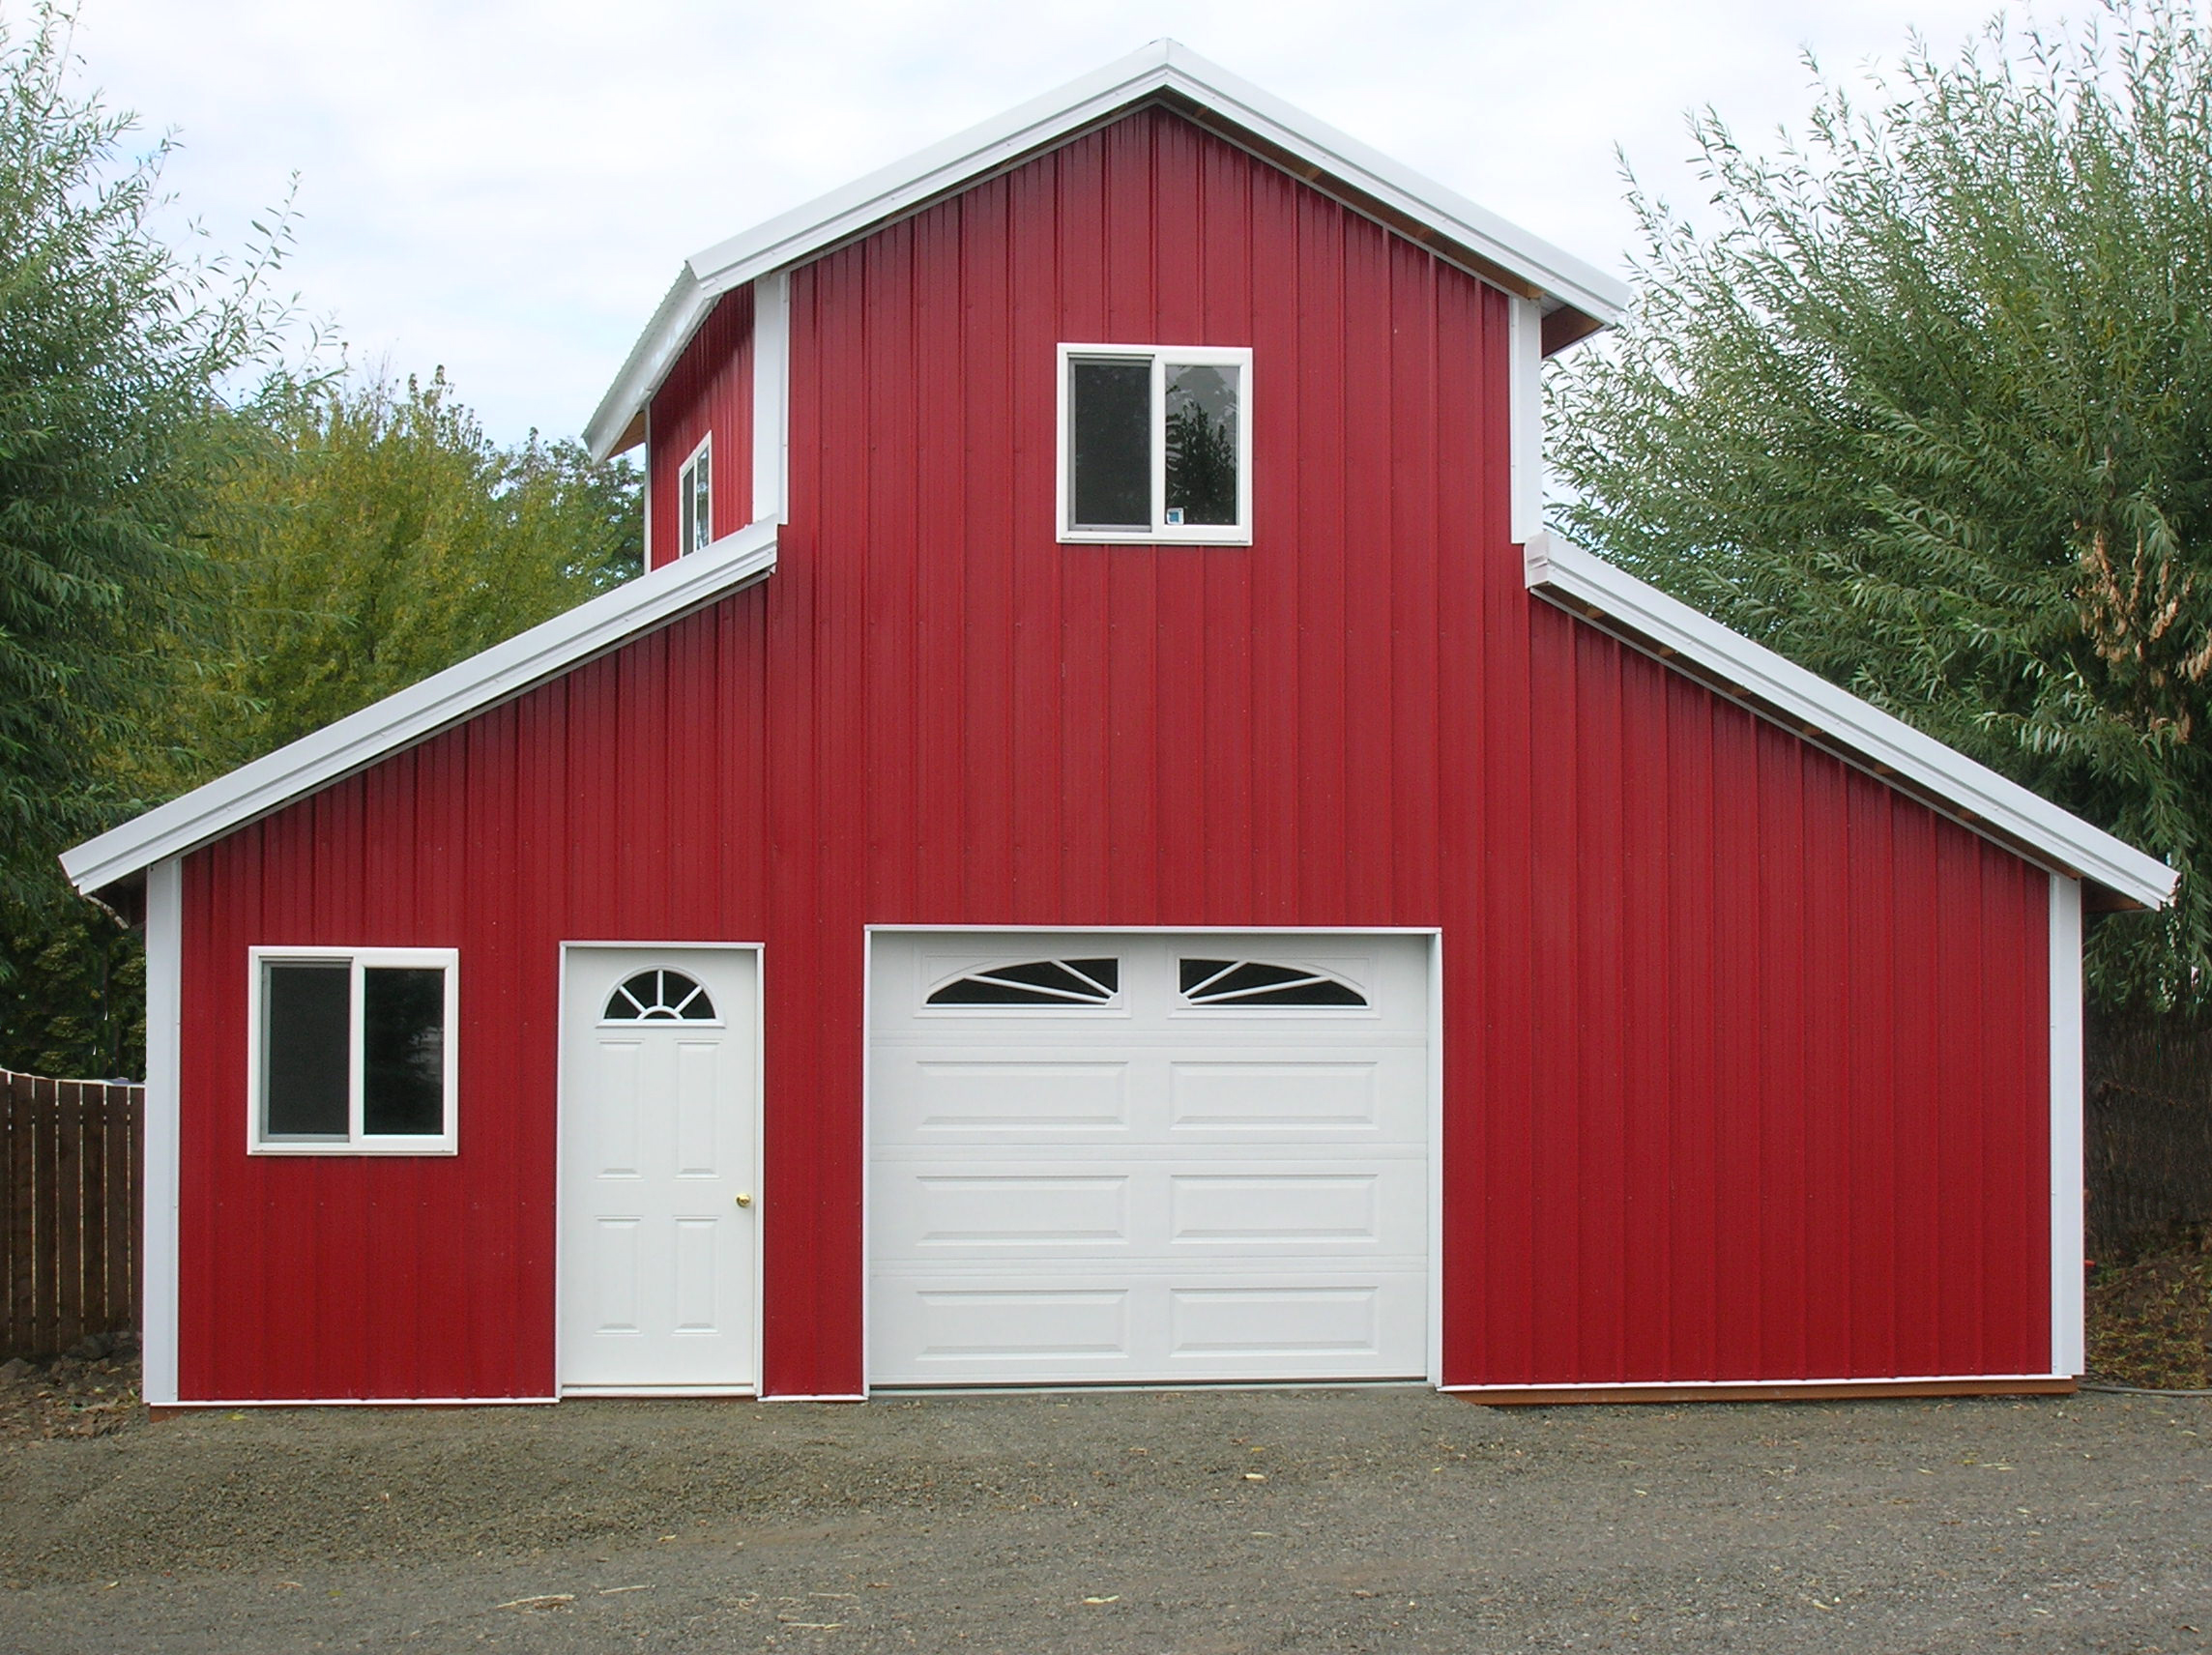 Mike The Pole Barn Guru Returns To Selling Buildings